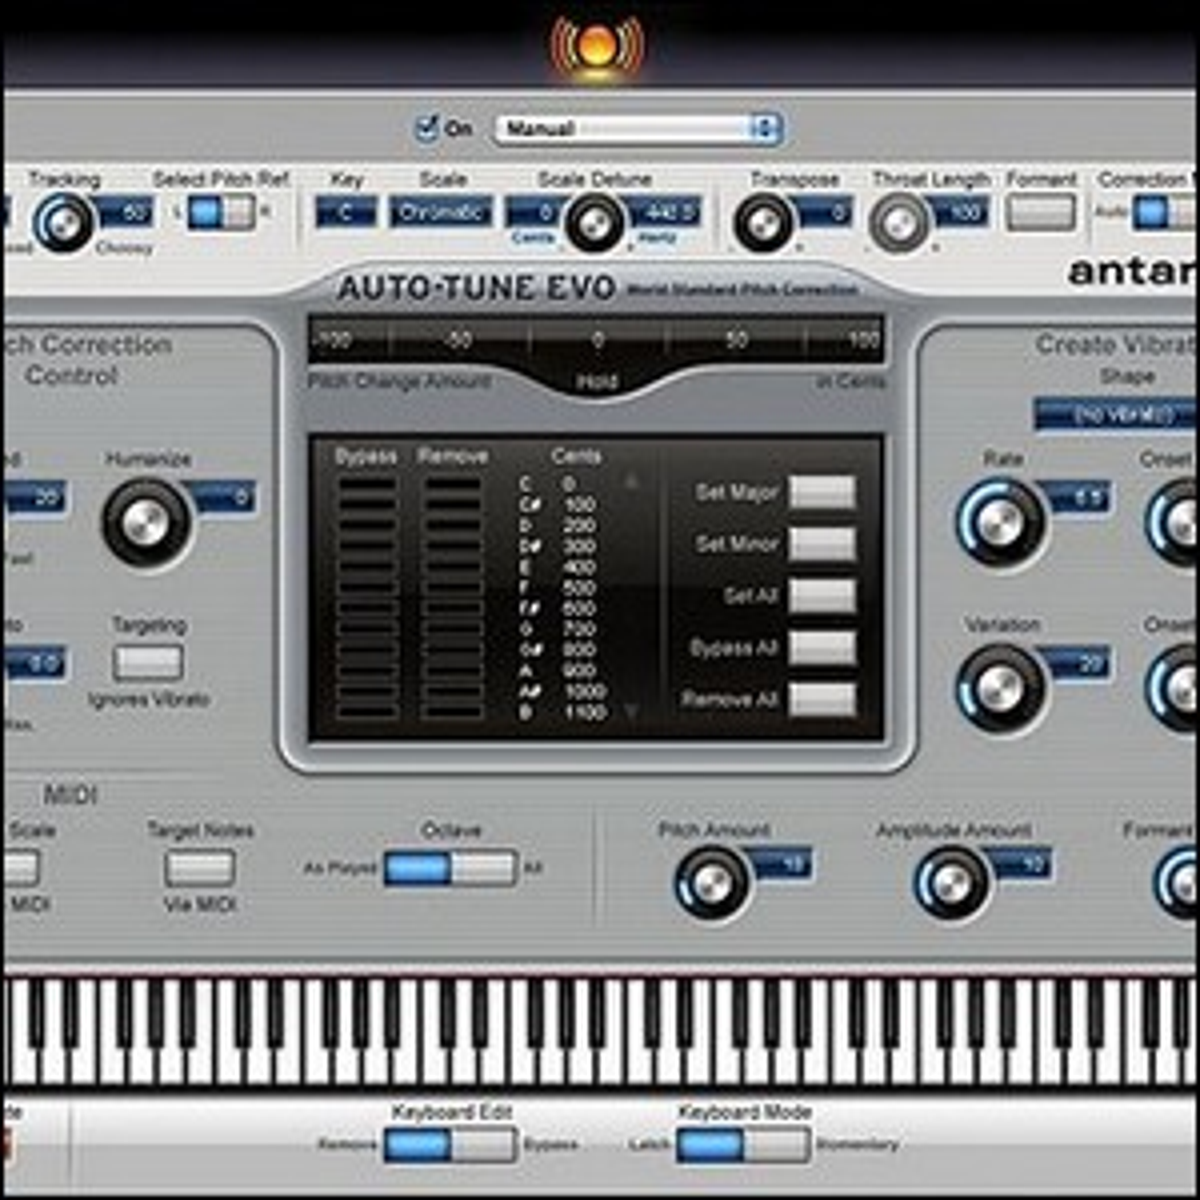 An auto-tune interface.